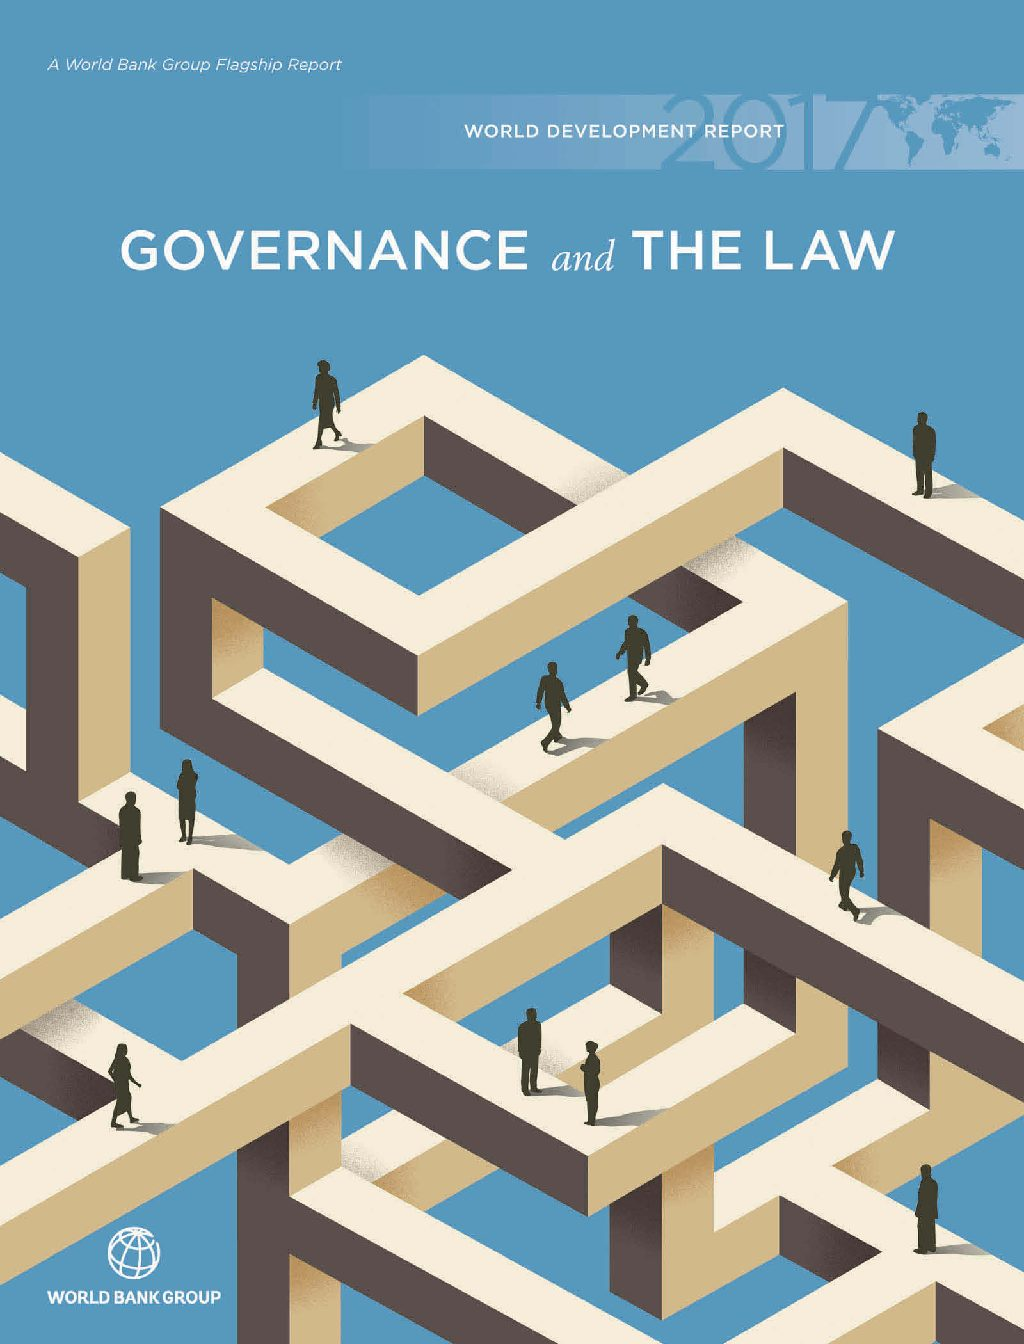 World Development Report 2017  – Governance and Law